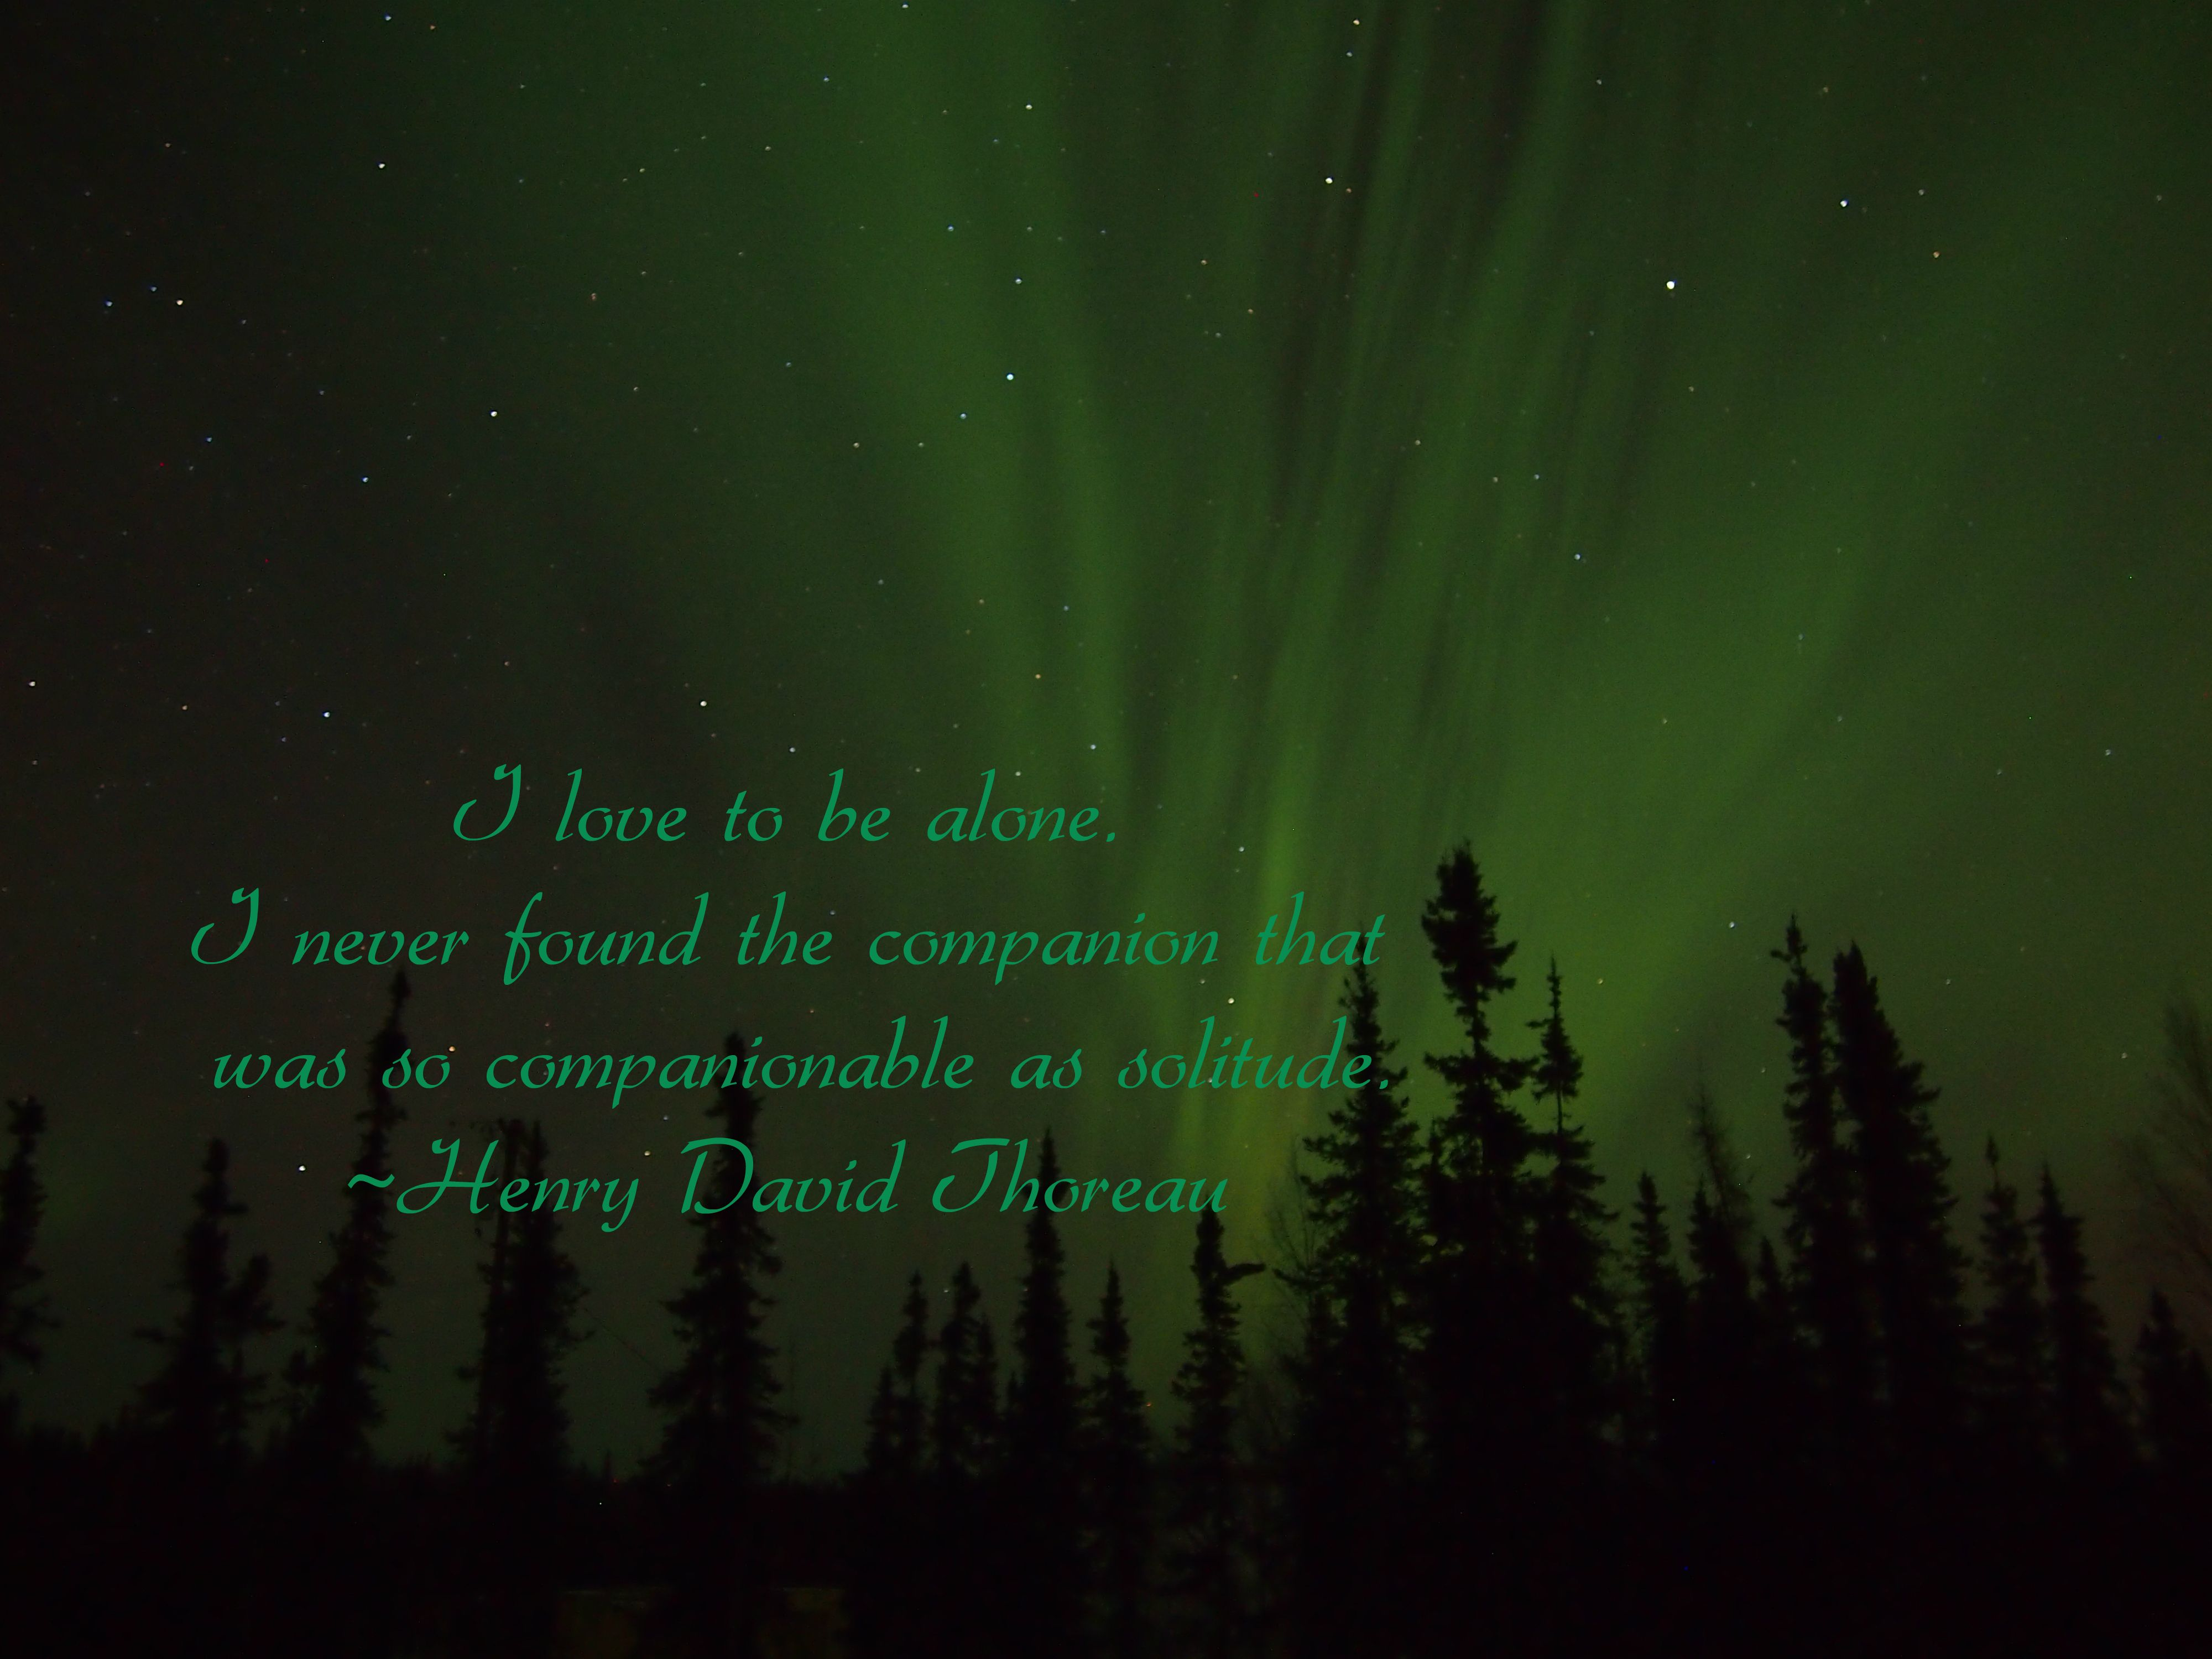 I love to be alone. I never found the companion that was so companionable as solitude. Henry David Thoreau www.auroranotify.com photo by ABN